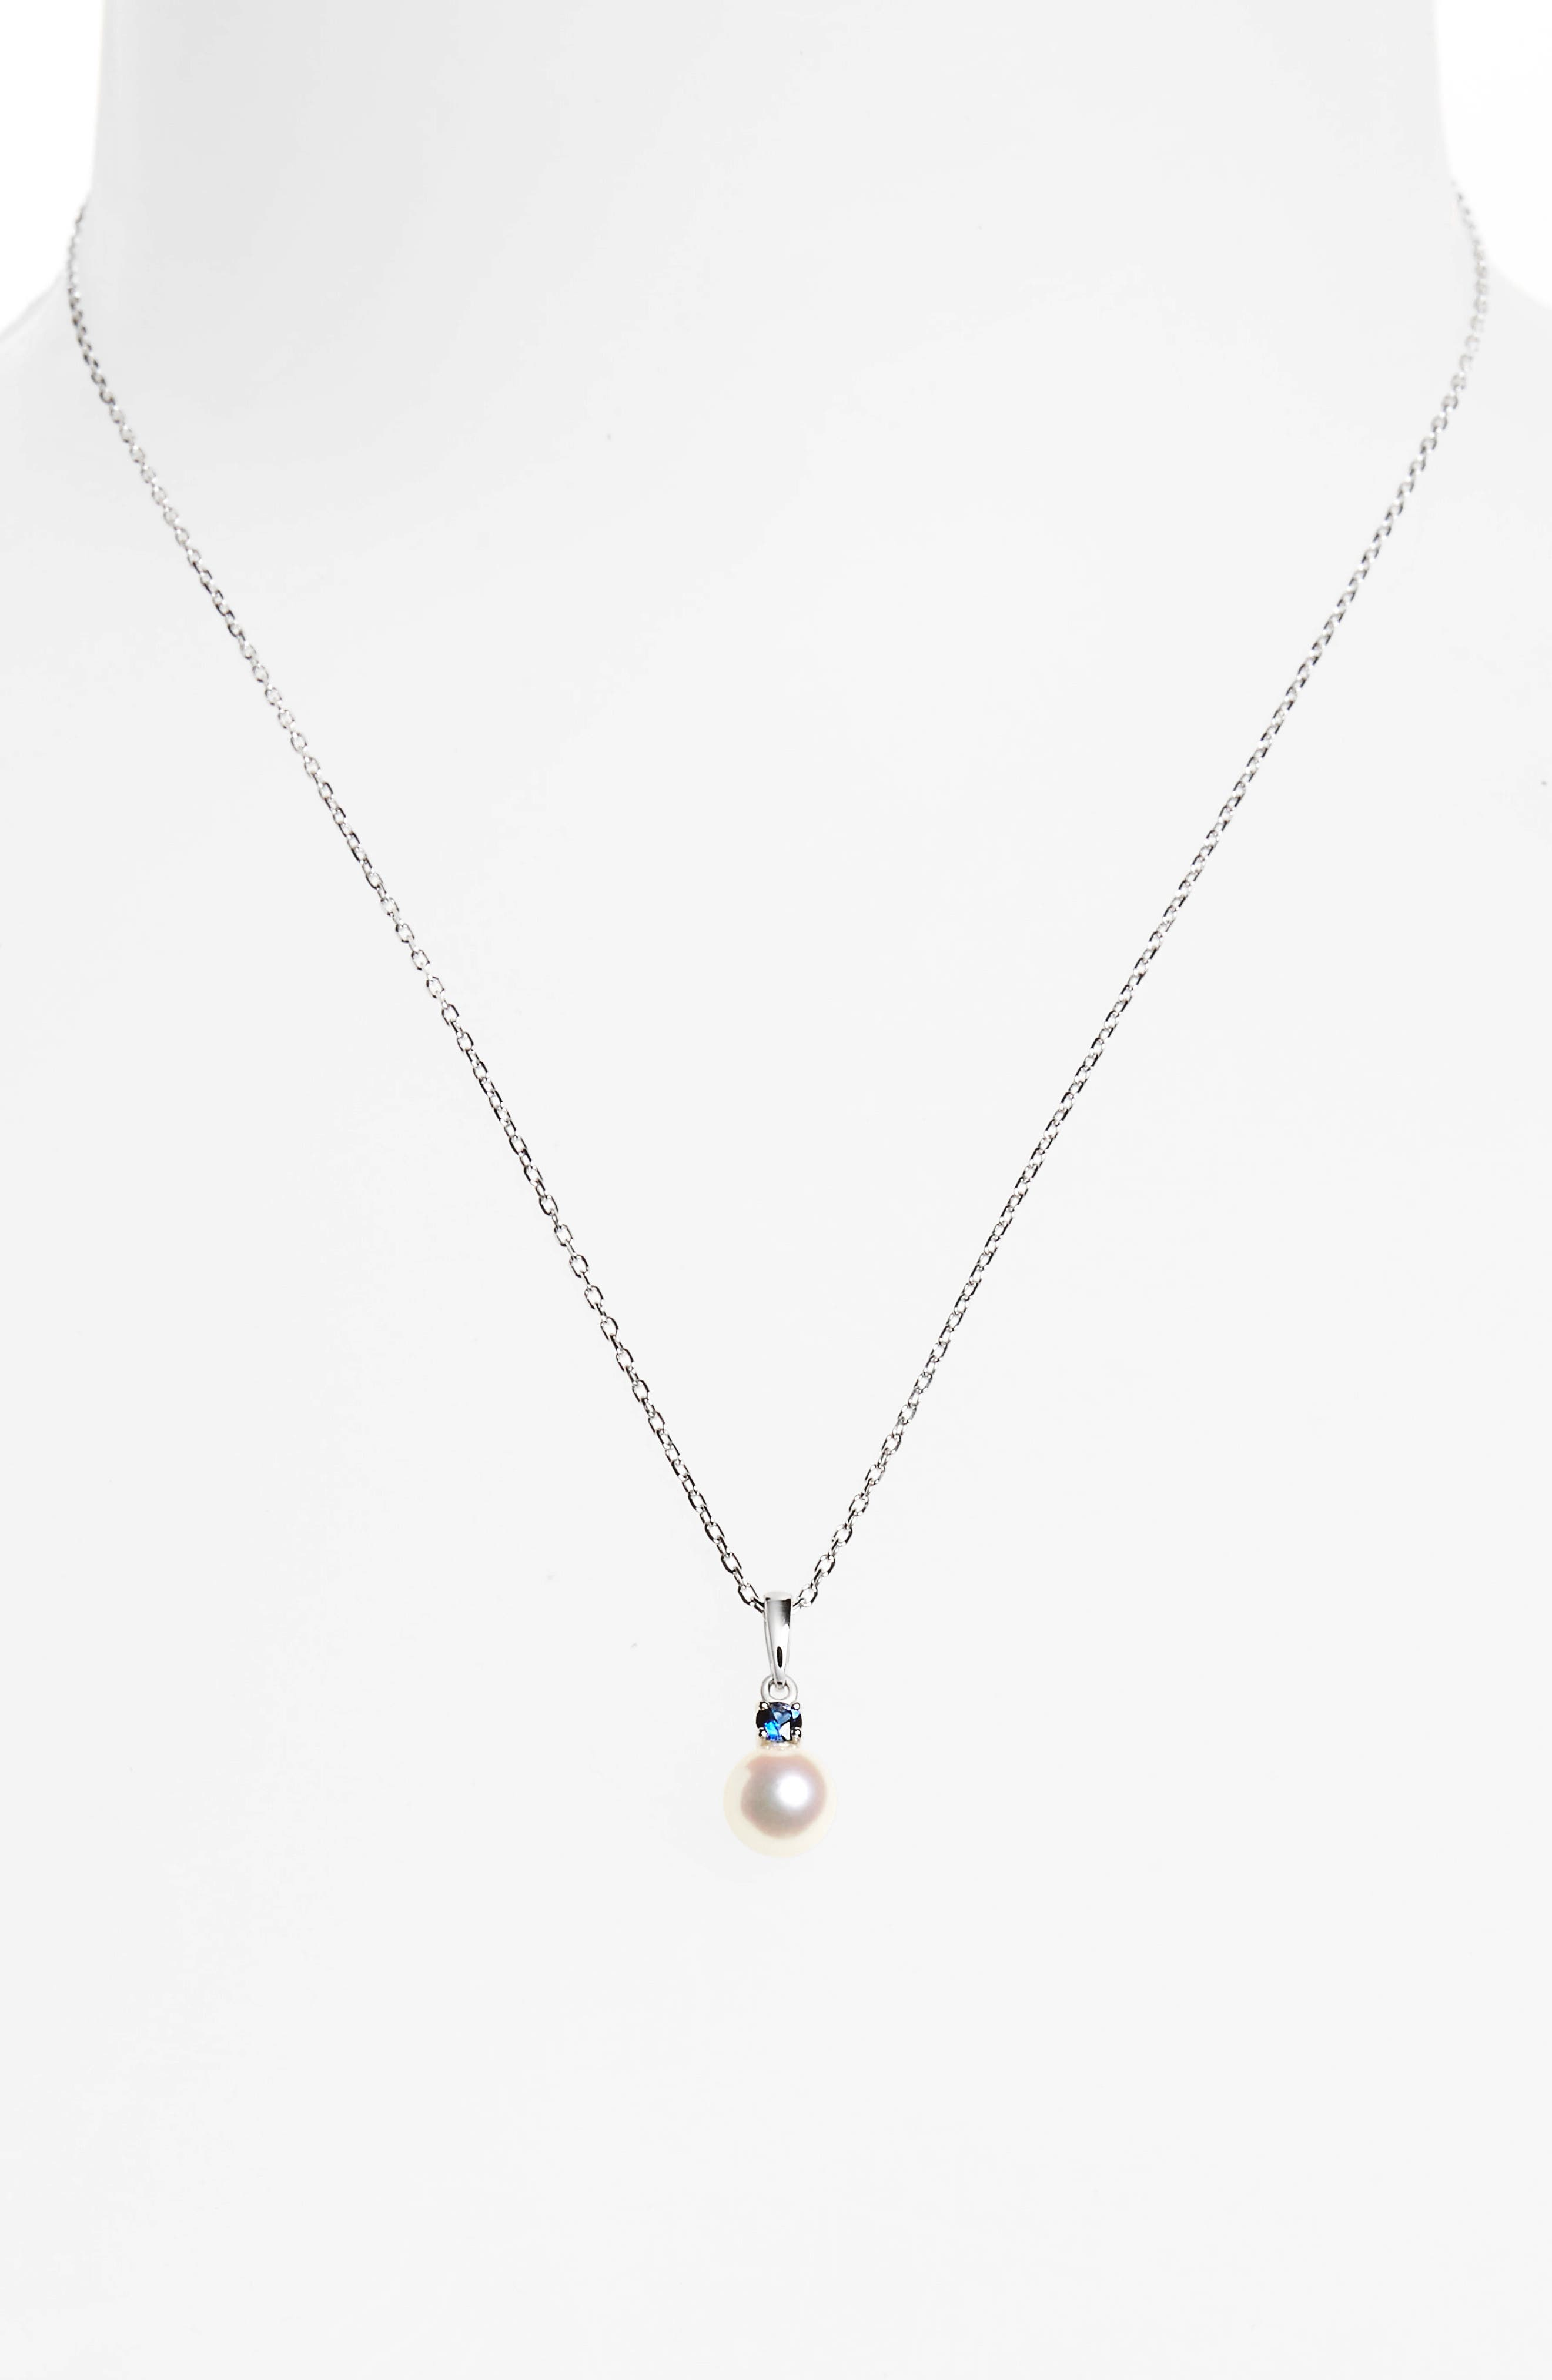 Akoya Cultured Pearl & Sapphire Pendant Necklace,                             Alternate thumbnail 2, color,                             White Gold